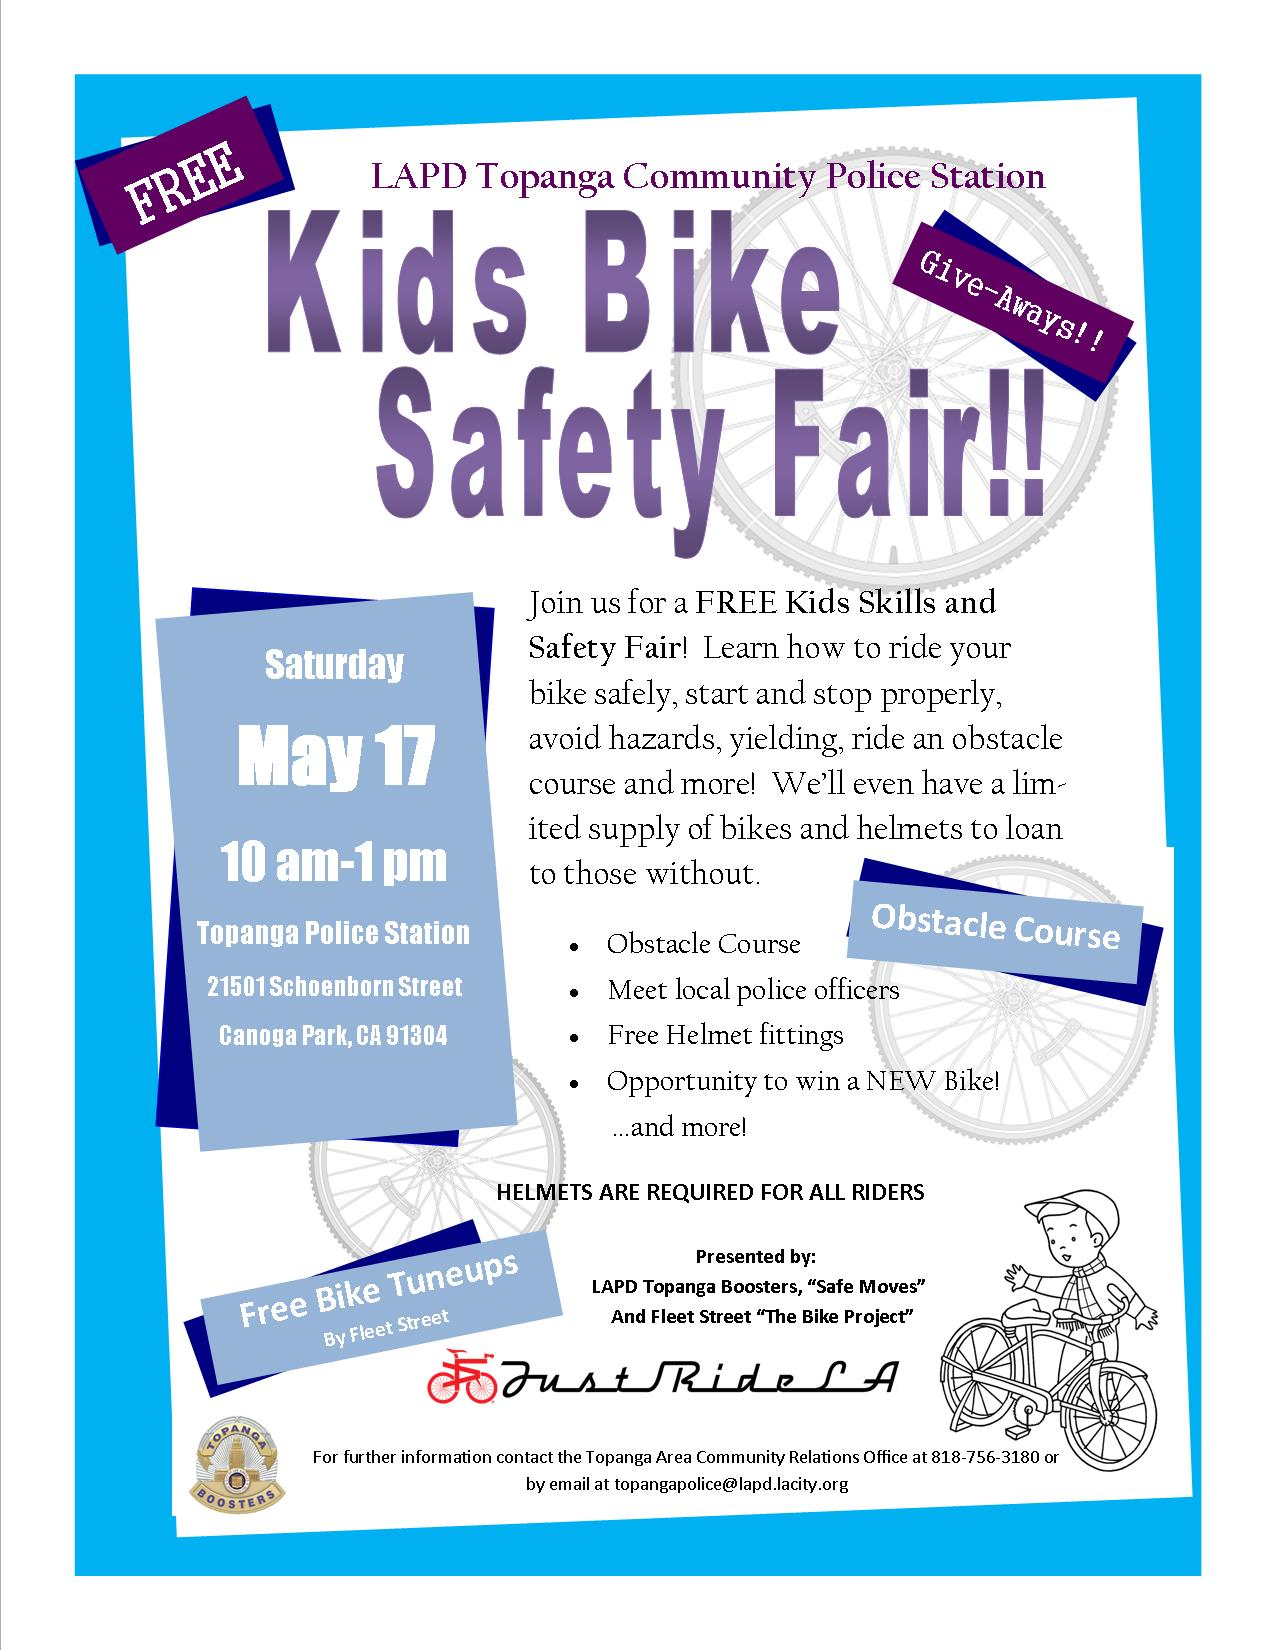 Bike_Safety_Fair_Flyer.jpg